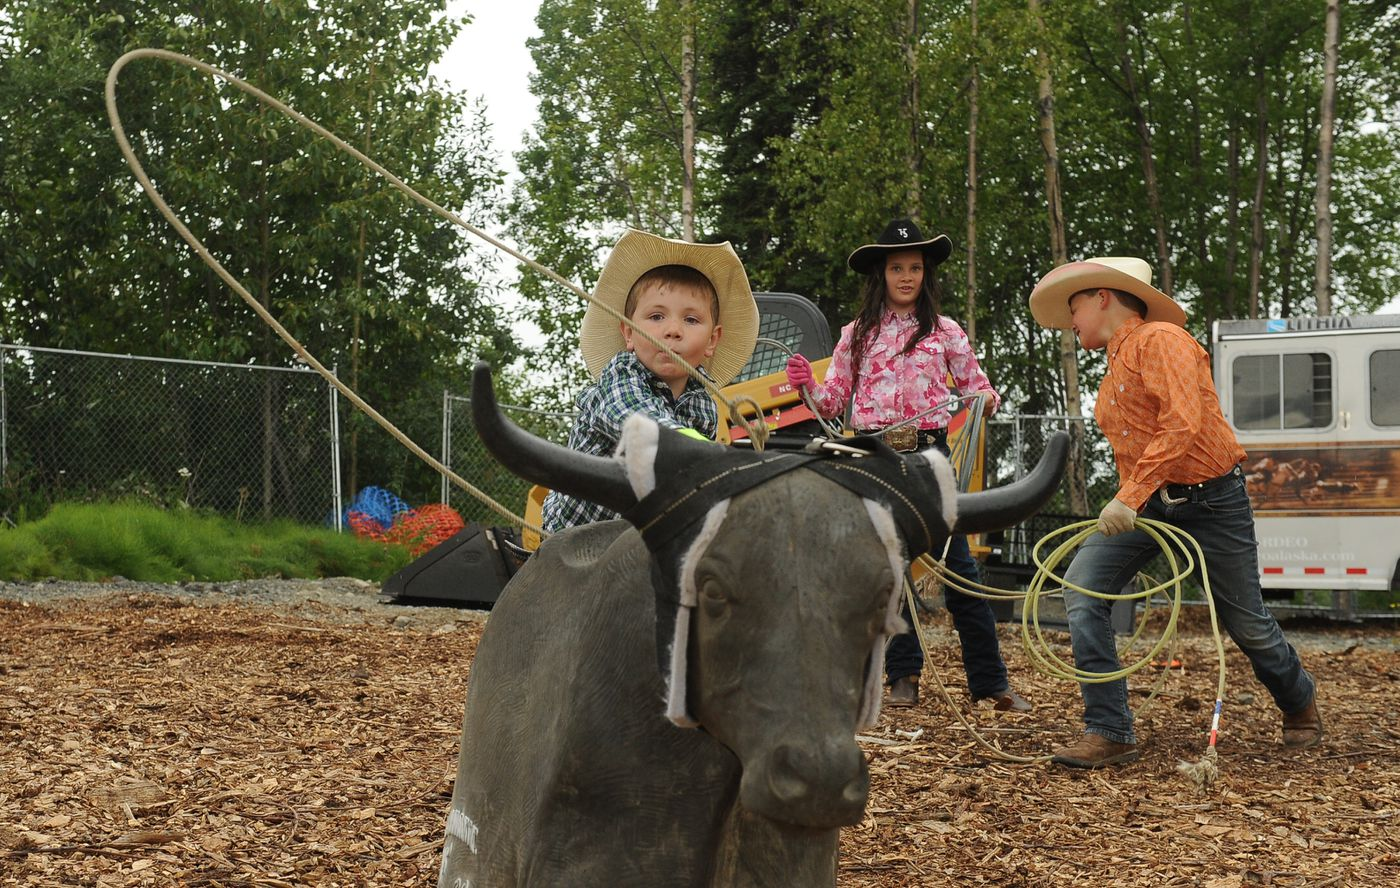 Youngsters compete in the Alaska Rodeo's Junior Rodeo during the Bear Paw Festival in Eagle River, AK on Friday, July 13, 2018. (Bob Hallinen / ADN)